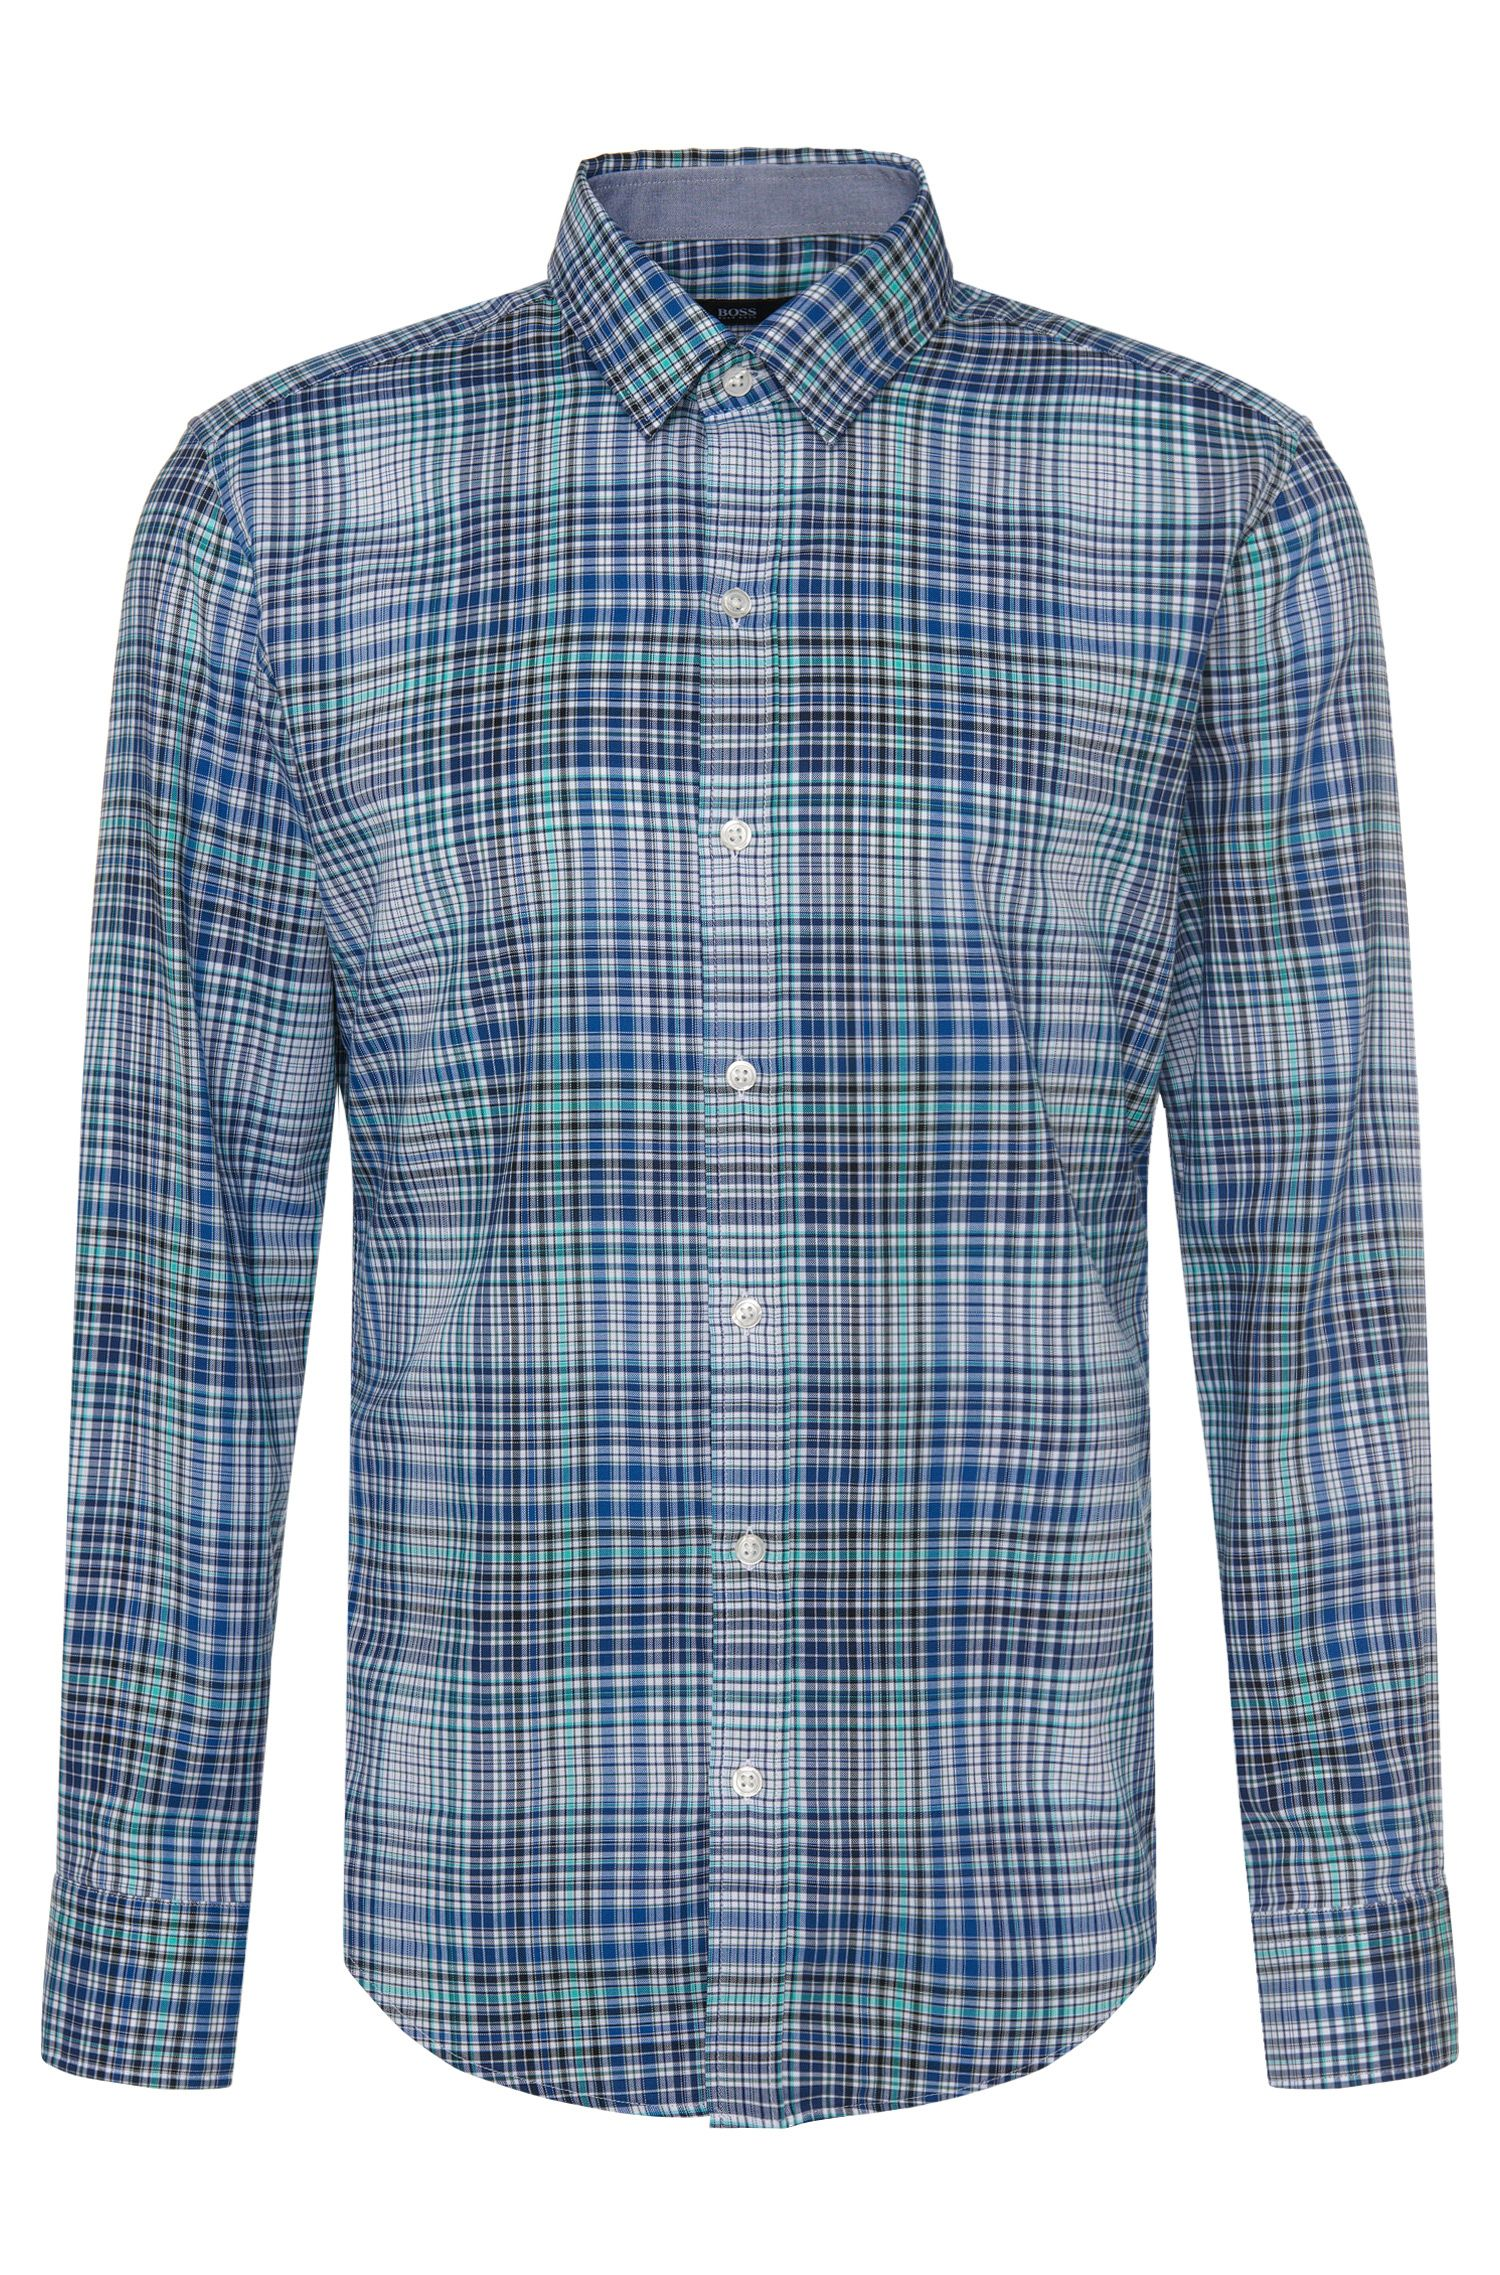 'Robbie' | Slim Fit, Cotton Button Down Shirt